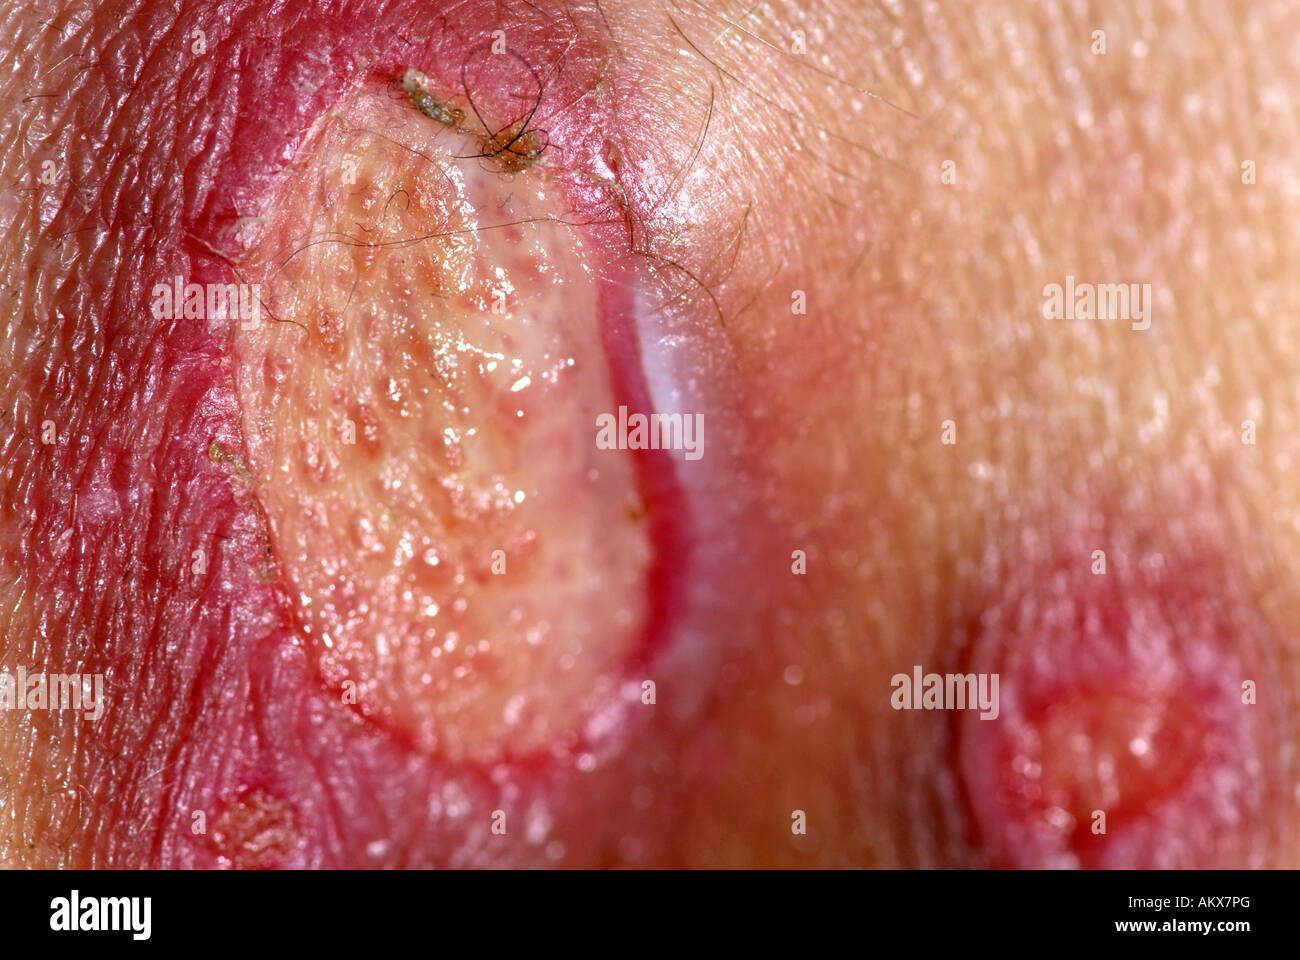 bed sores on bottom of female patient stock photo With bed sores on bottom